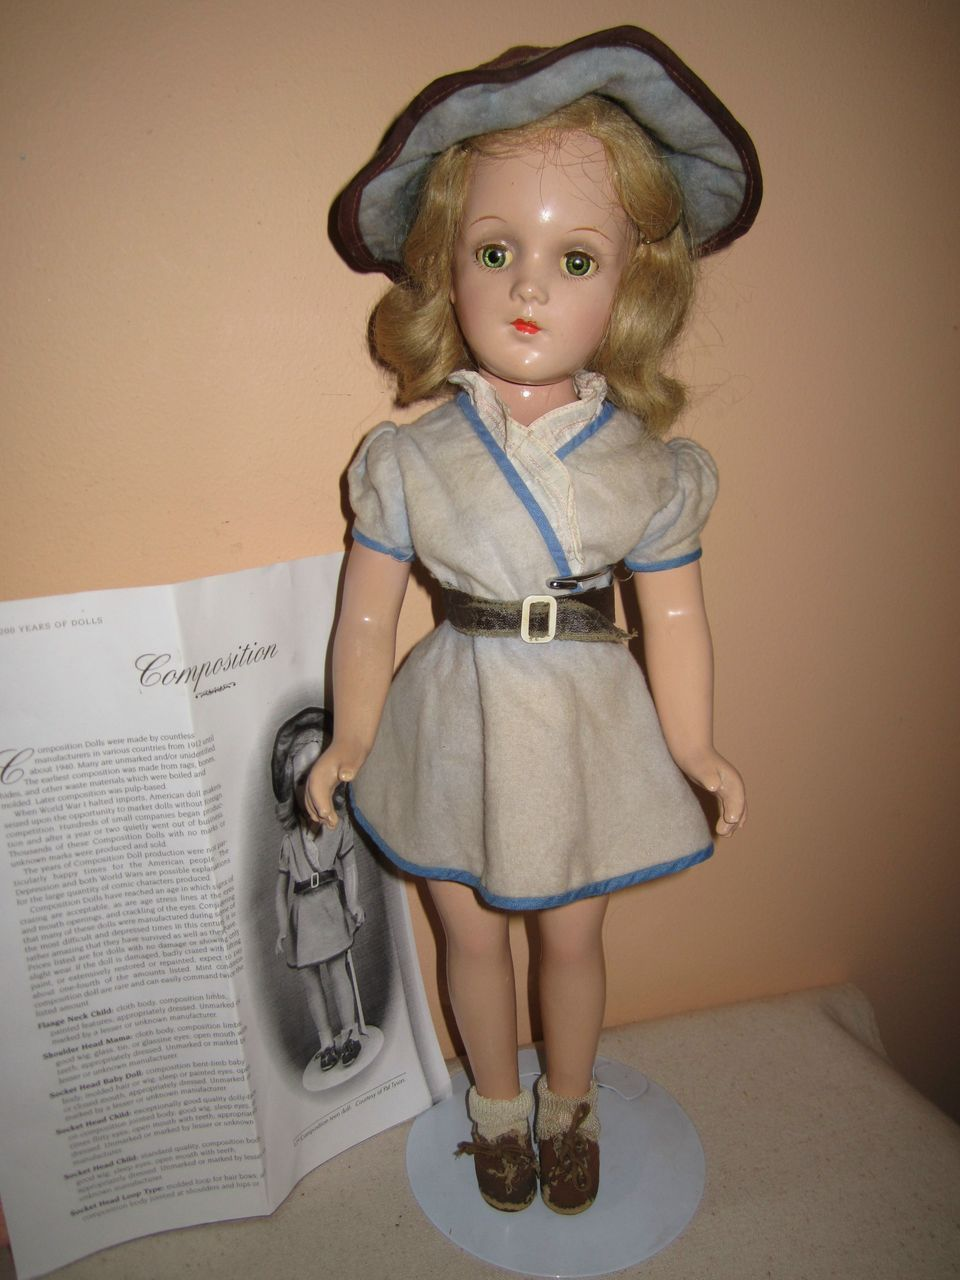 Vintage composition teen doll original clothes, unmarked but probably Arranbee